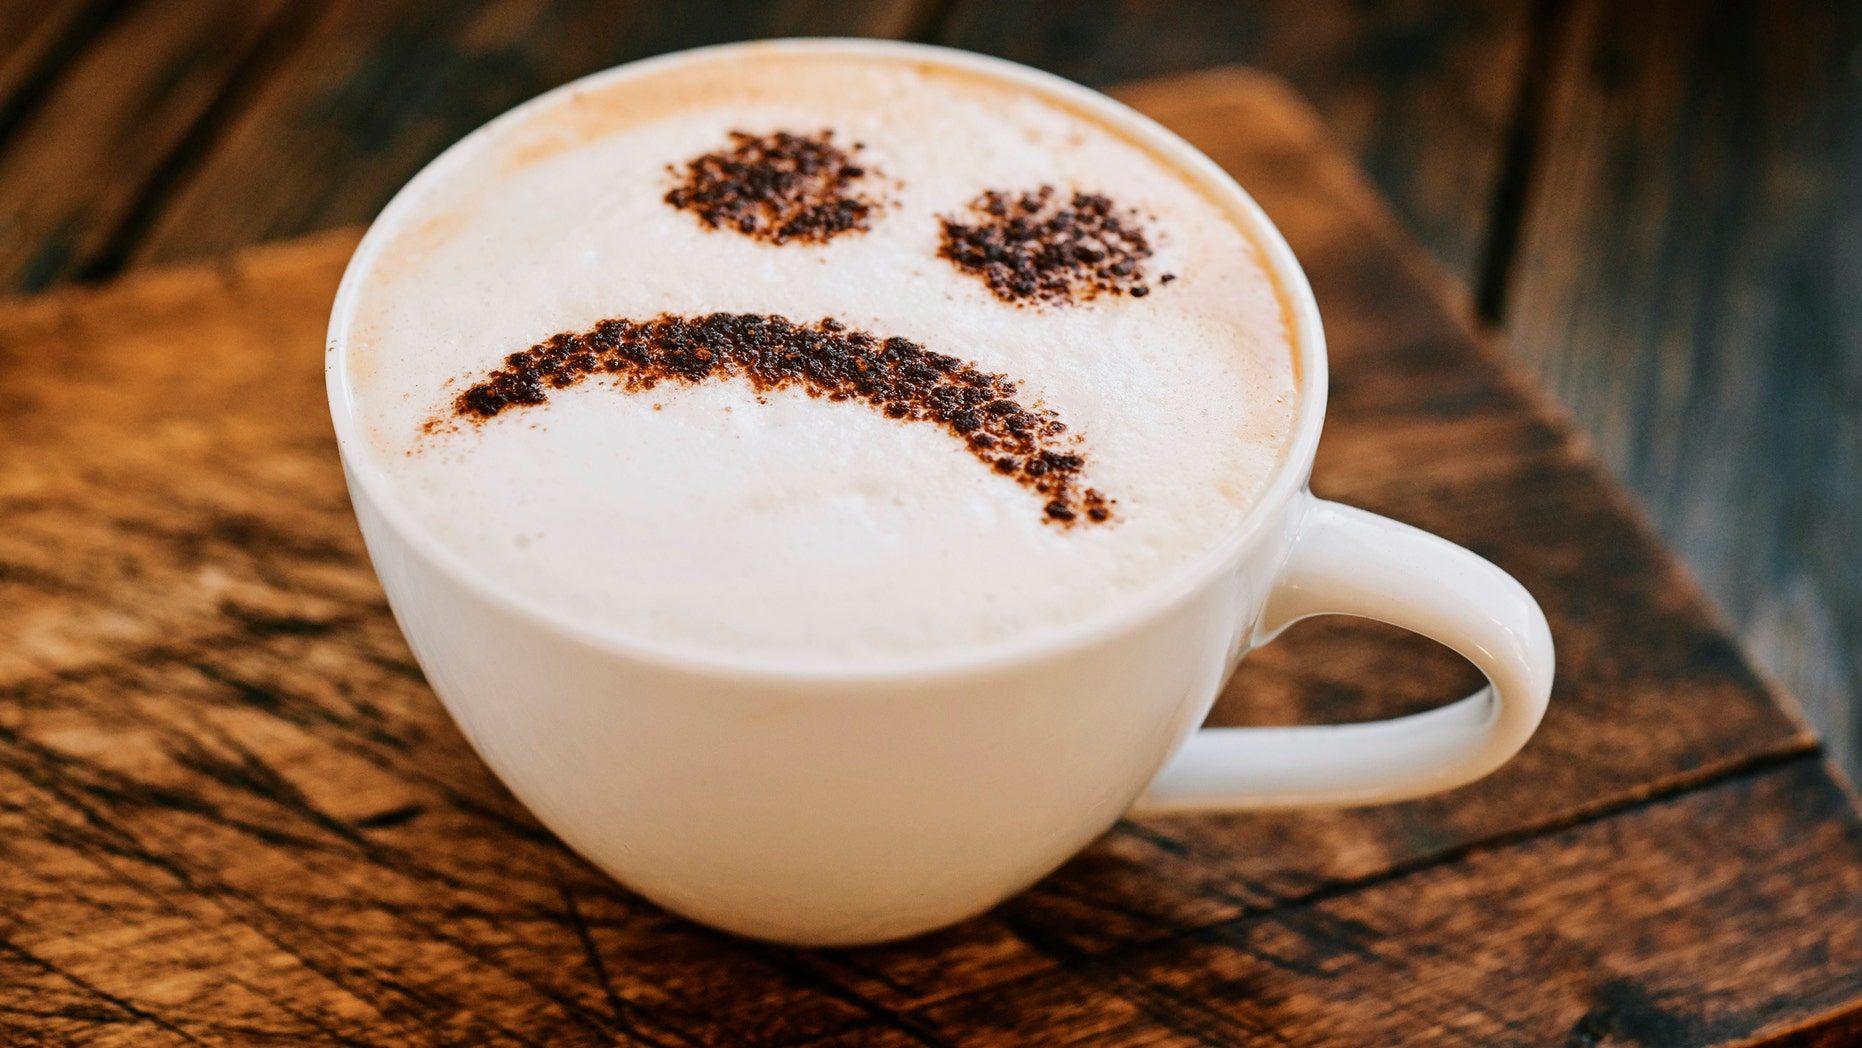 A cup of joe per day might keep the doctor away, but half a dozen or more is pushing it, the study finds.